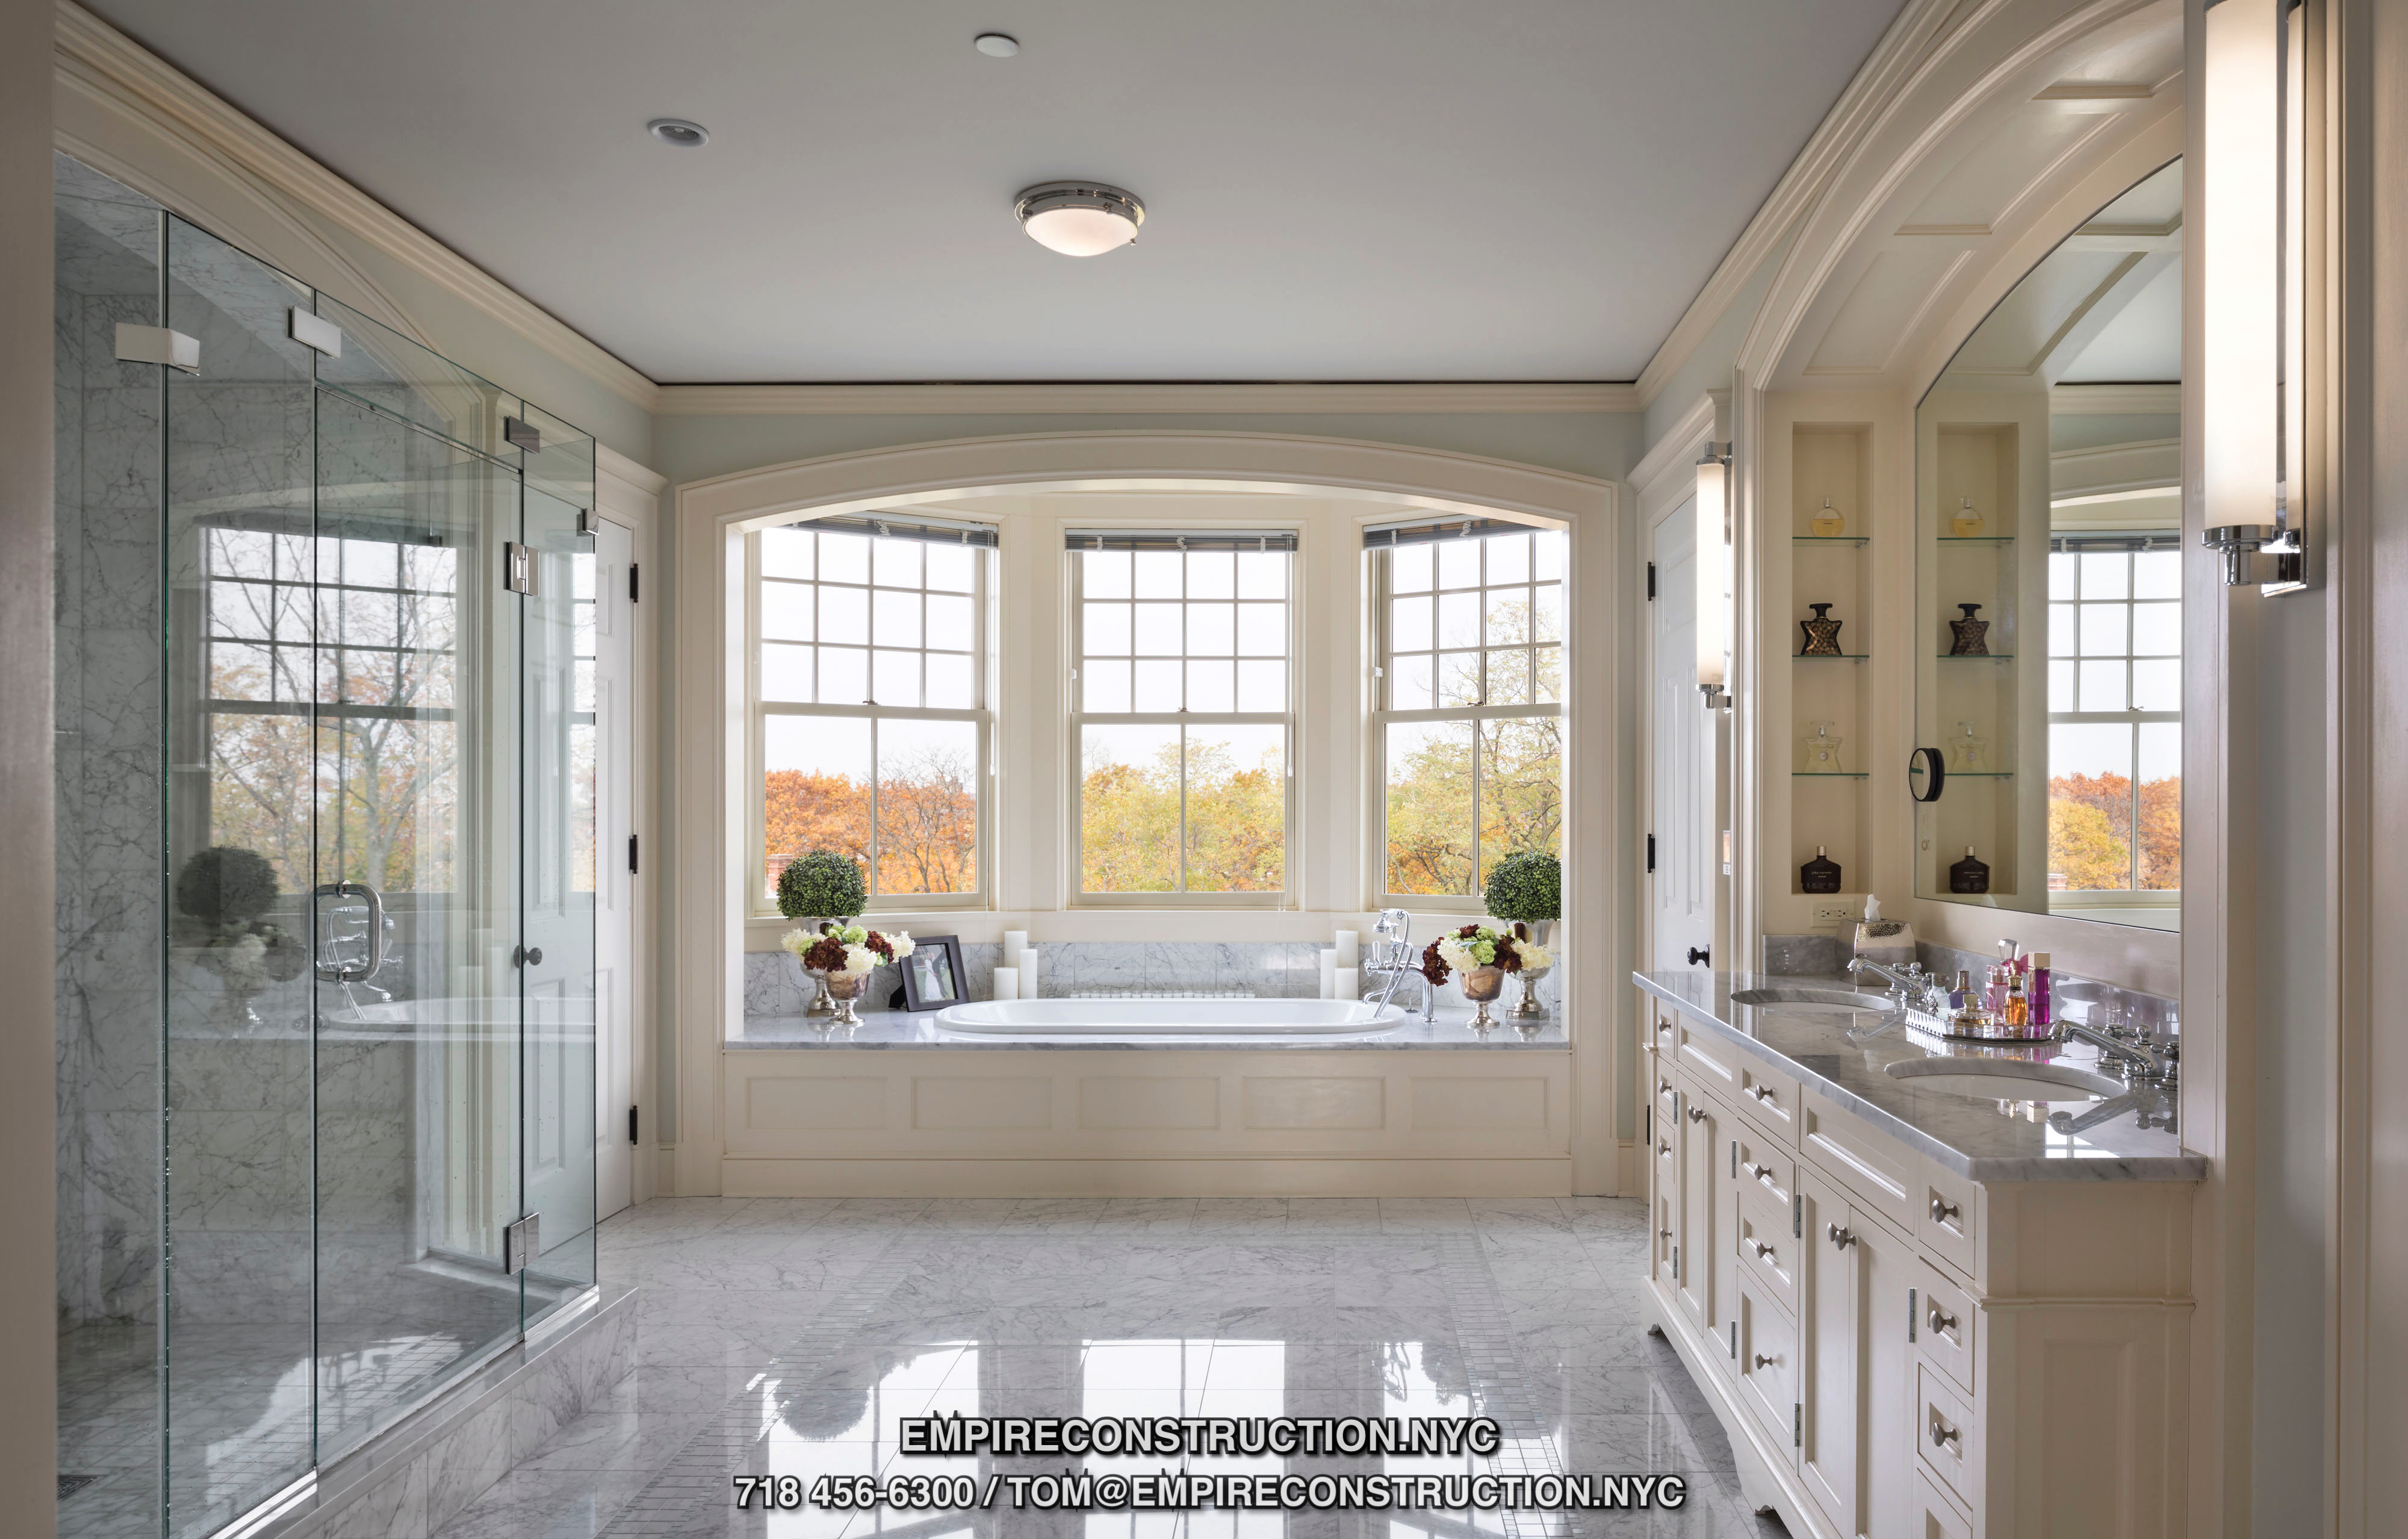 empire restoration consulting corp in ridgewood ny whitepages